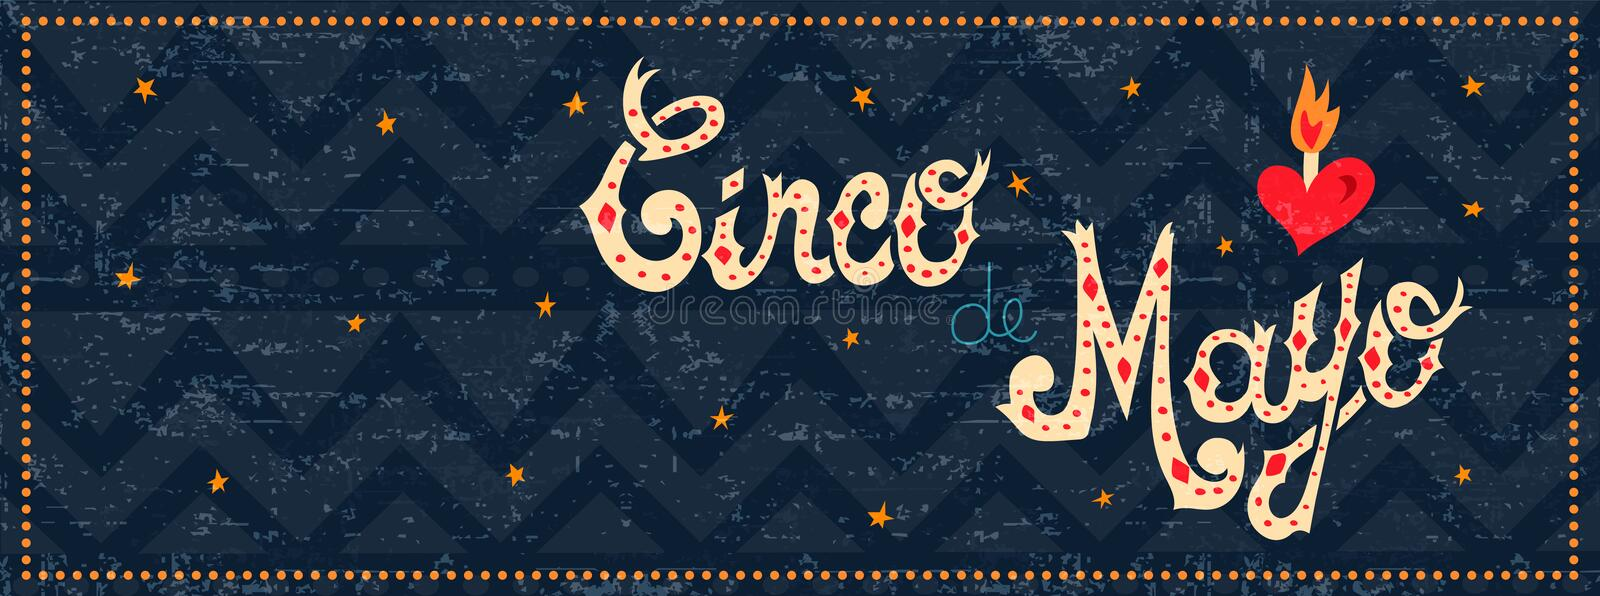 Cinco de mayo mexican party web banner quote royalty free illustration